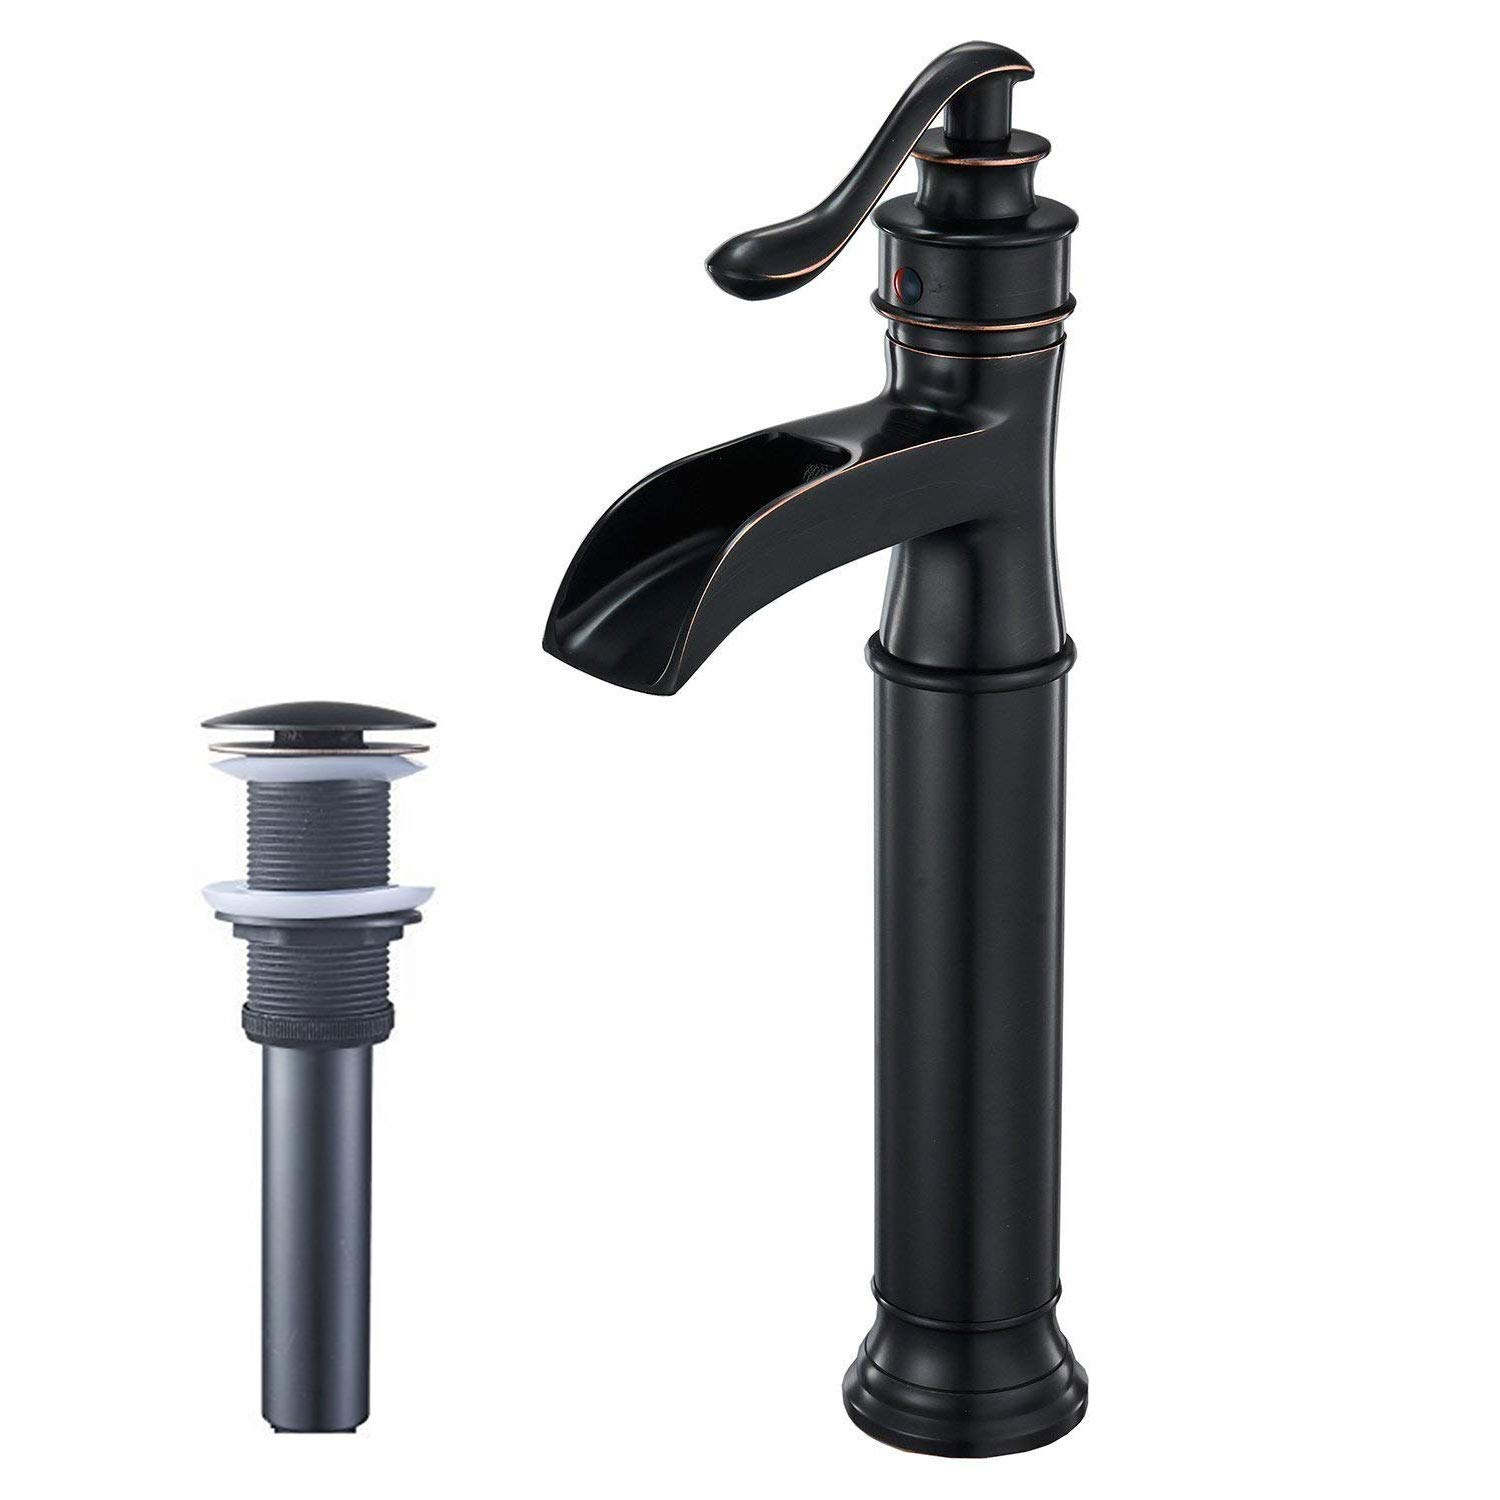 BWE Waterfall Spout Oil Rubbed Bronze Single Handle One Hole Bathroom Sink Vessel Faucet ORB Lavatory Faucets Deck Mount Tall Body Commercial by BWE